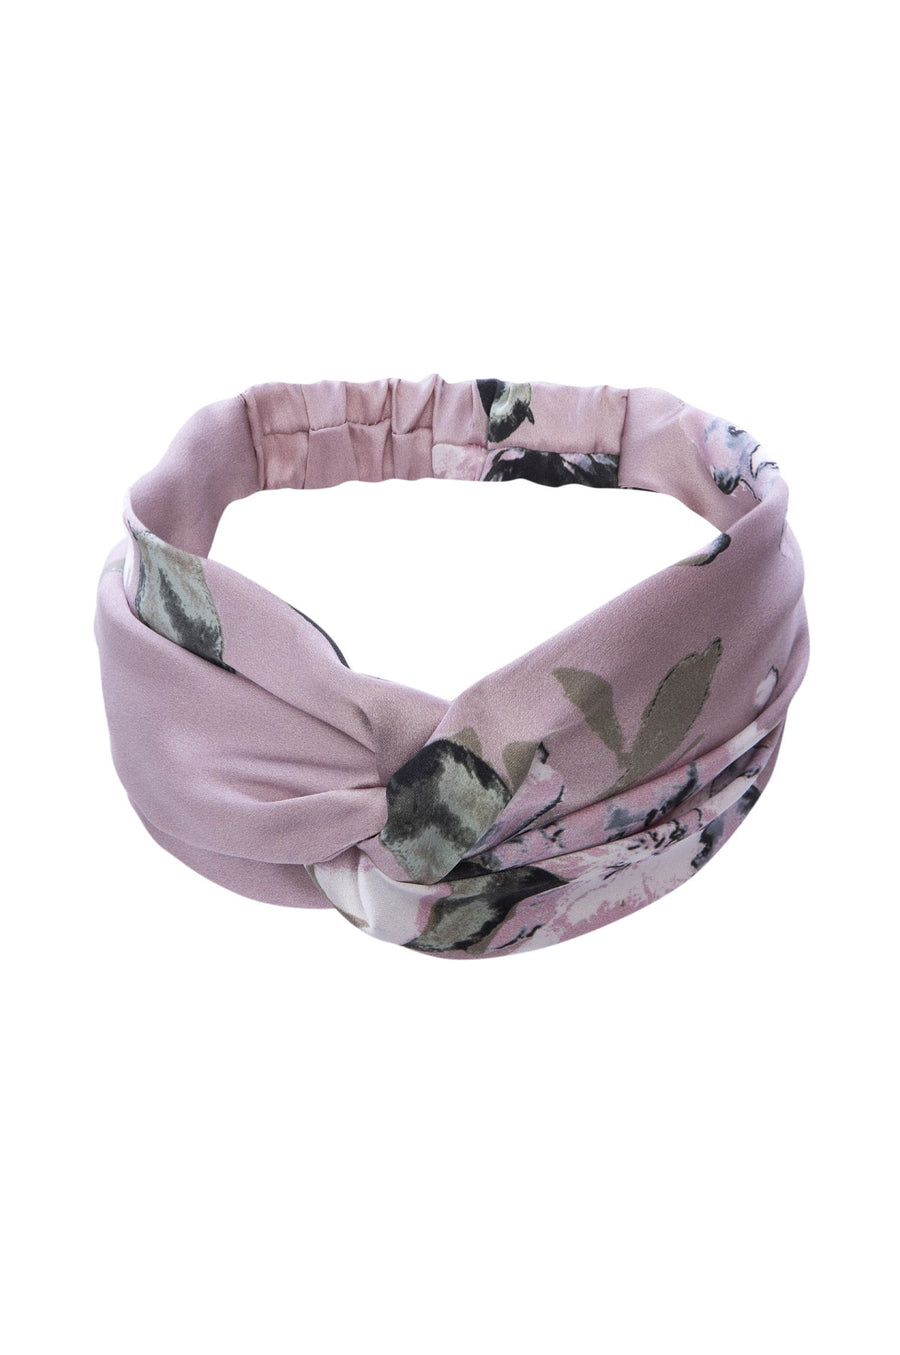 Silk Charmeuse 'Lovey' Headband: Champagne Floral Print